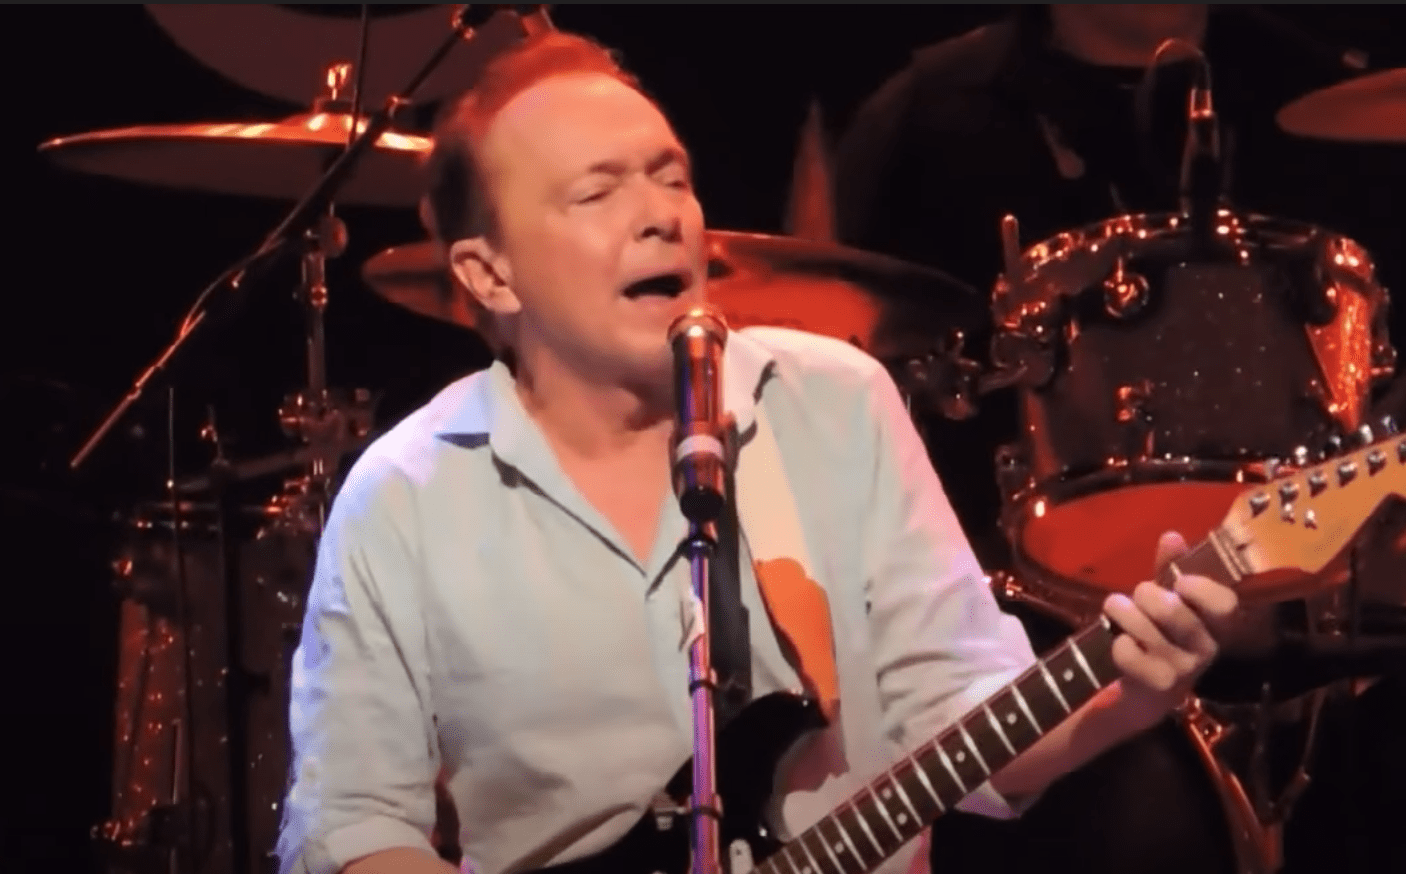 Image Source: Youtube/Inside Edition/David Cassidy performing